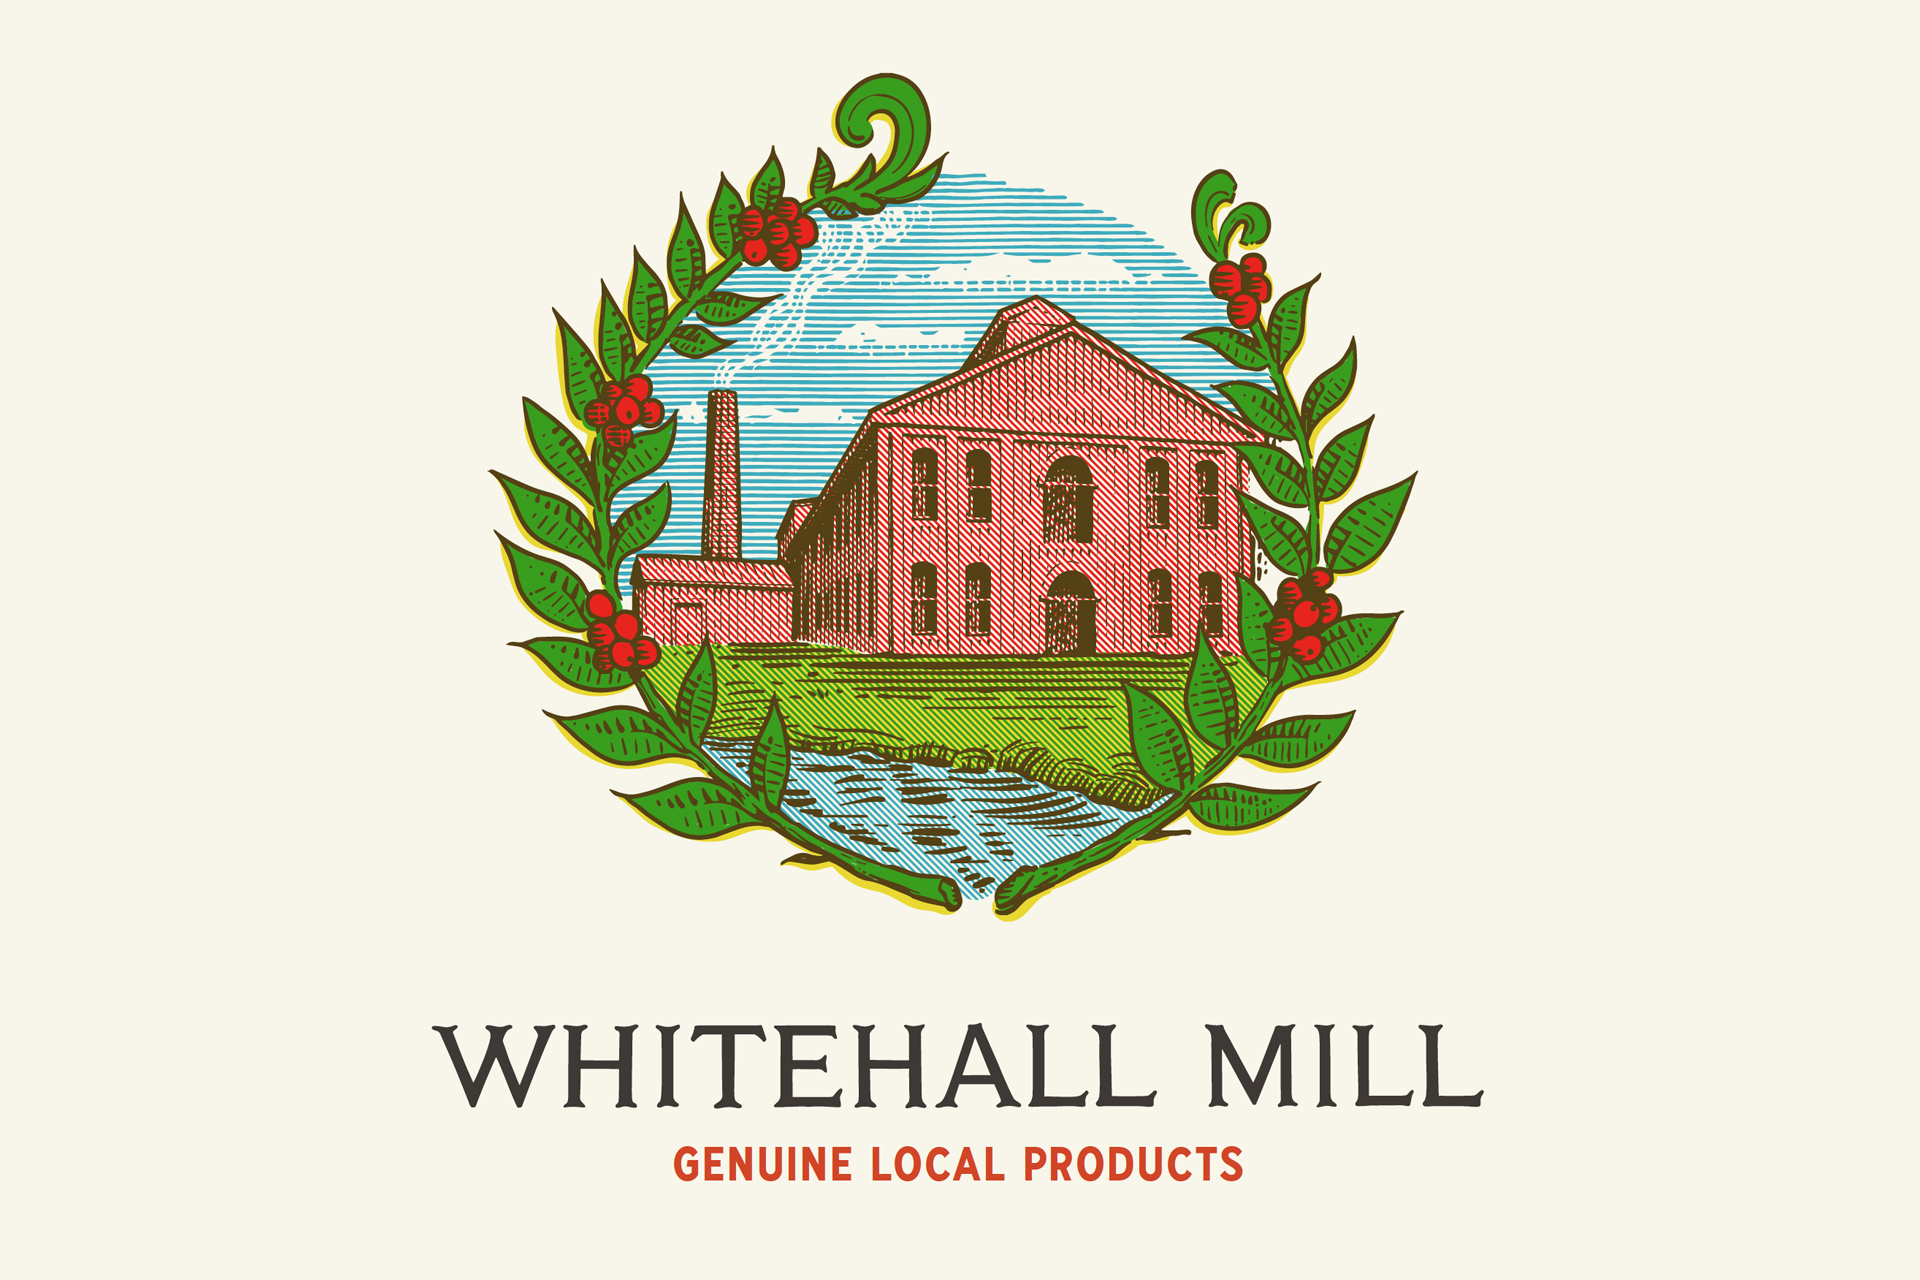 Whitehall_Mill_2017_YIR